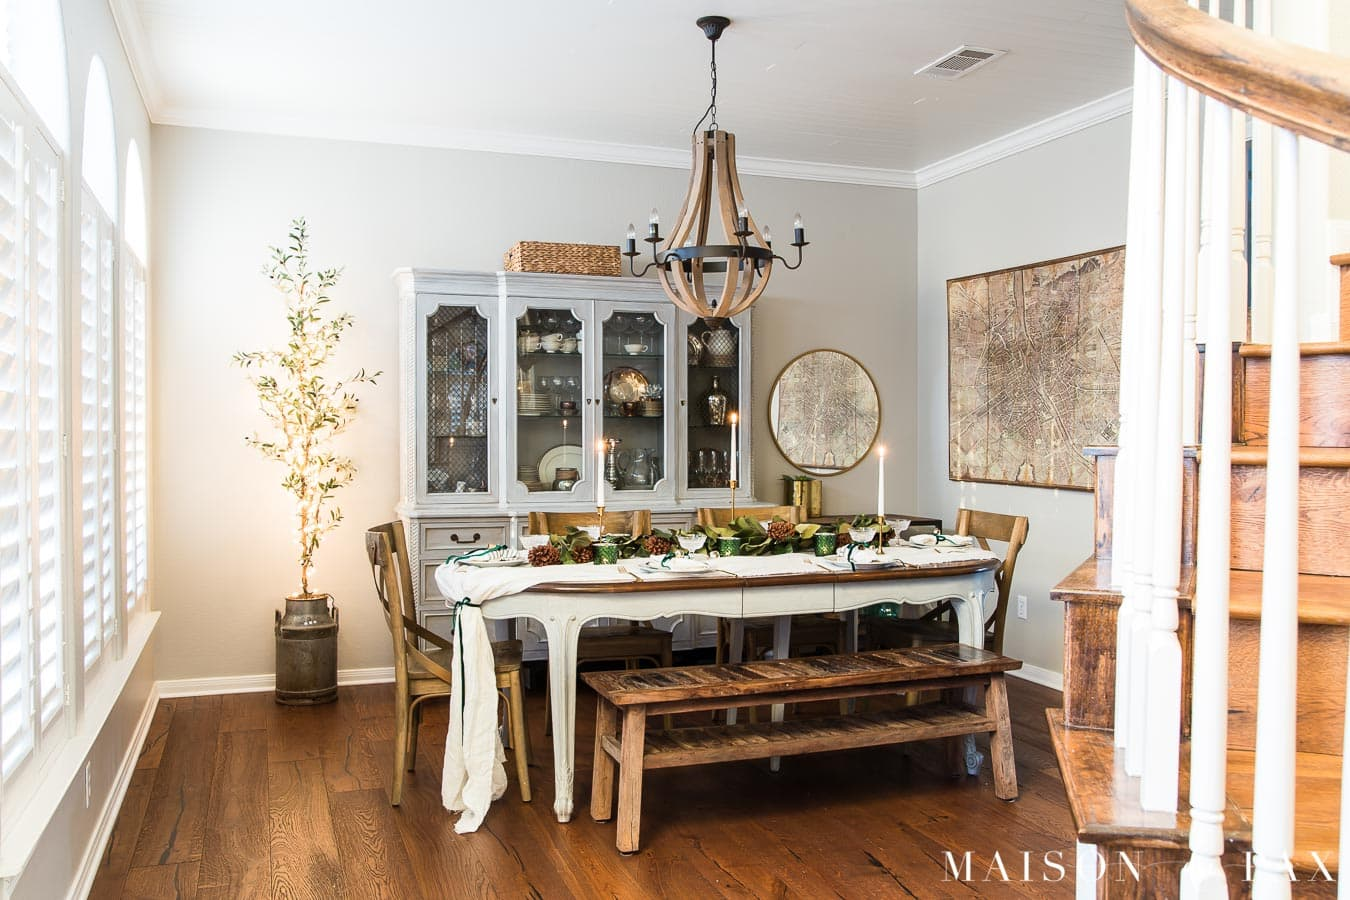 olive tree with Christmas lights beside dining table with holiday decorations | Maison de Pax